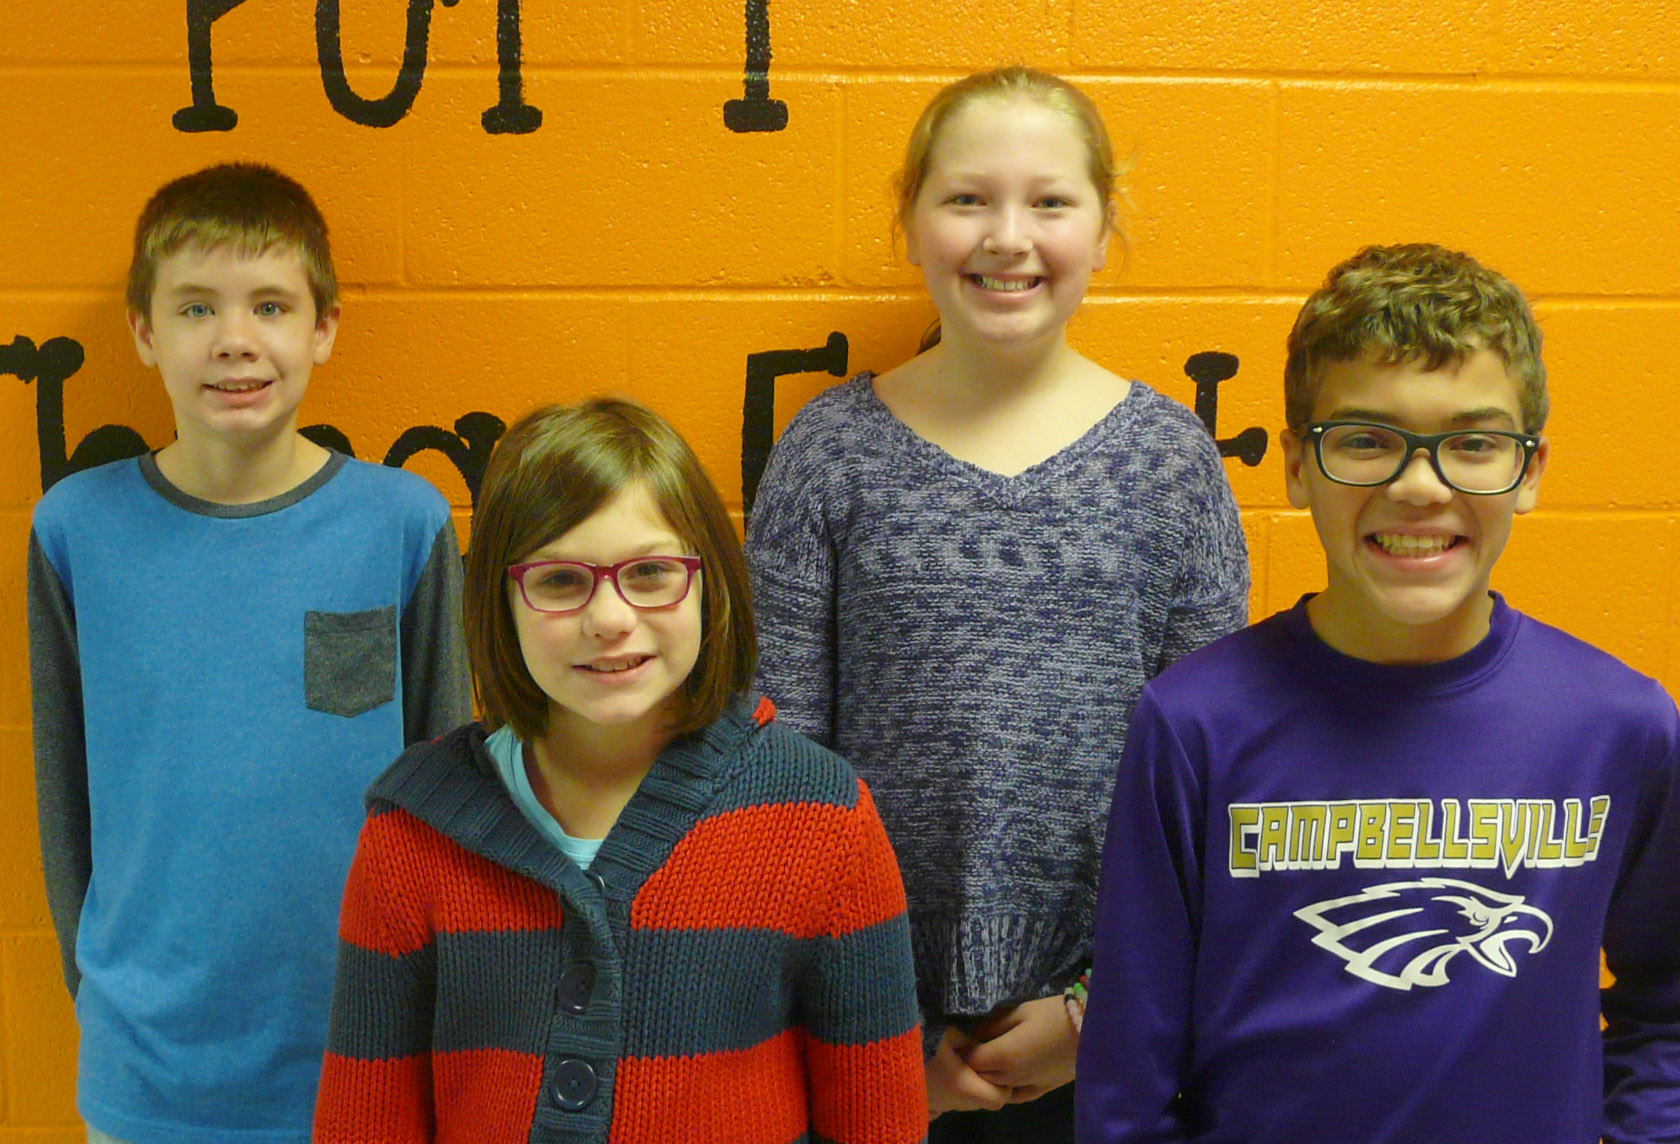 From left are sixth-grader Blake Tungate, fourth-grader Destiny Milby, fifth-grader Ava Hughes and seventh-grader Logan Phillips. Eighth-grader Noah Mardis isn't pictured.